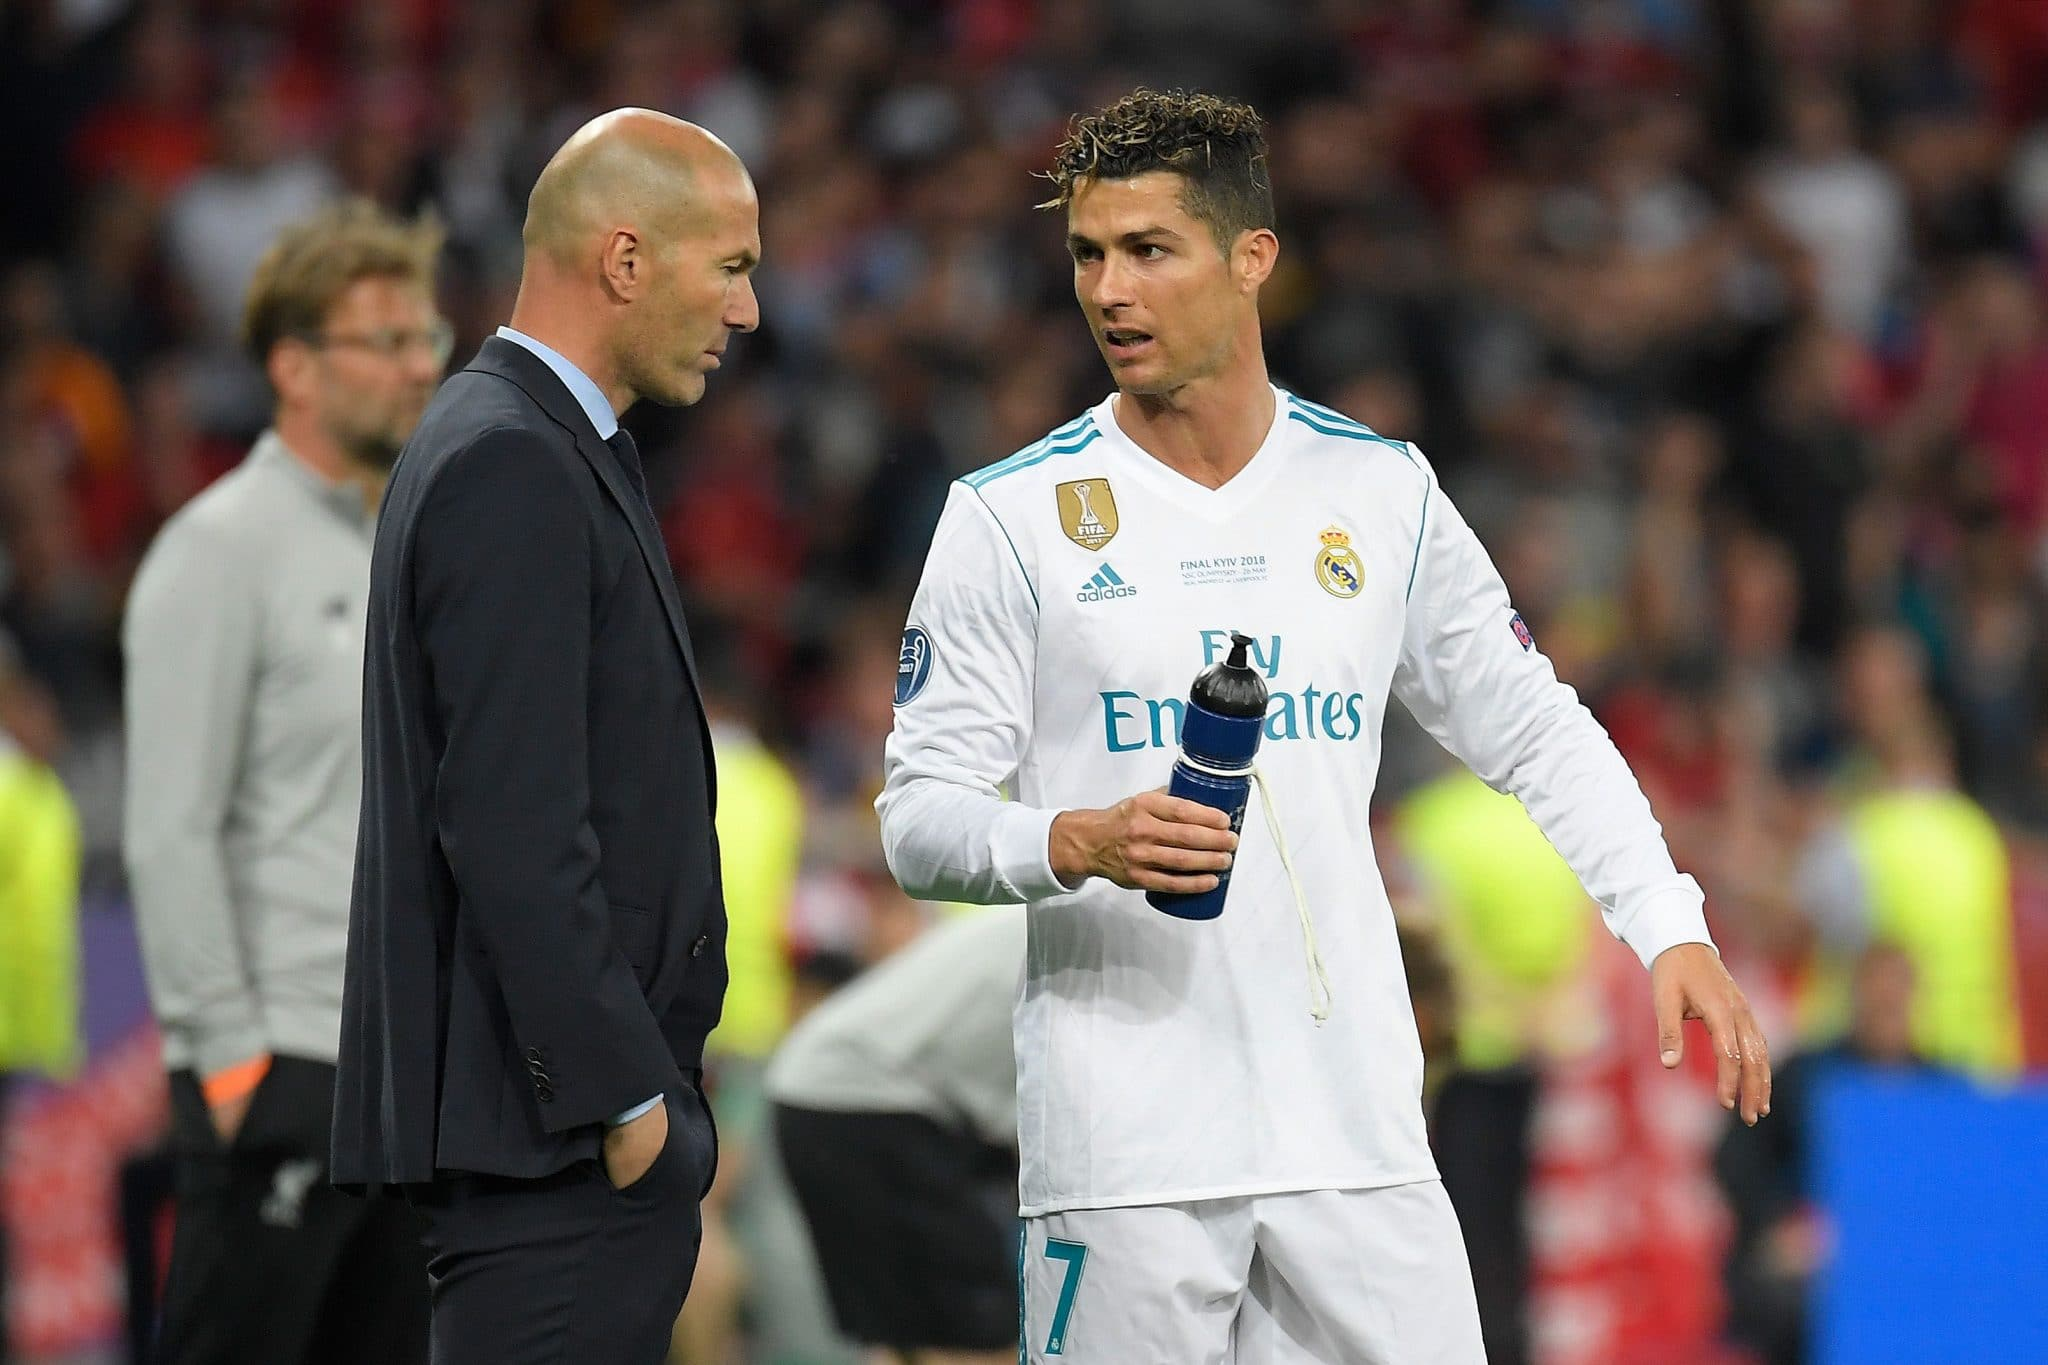 Zinedine Zidane runs Real risk of ruining Madrid legacy